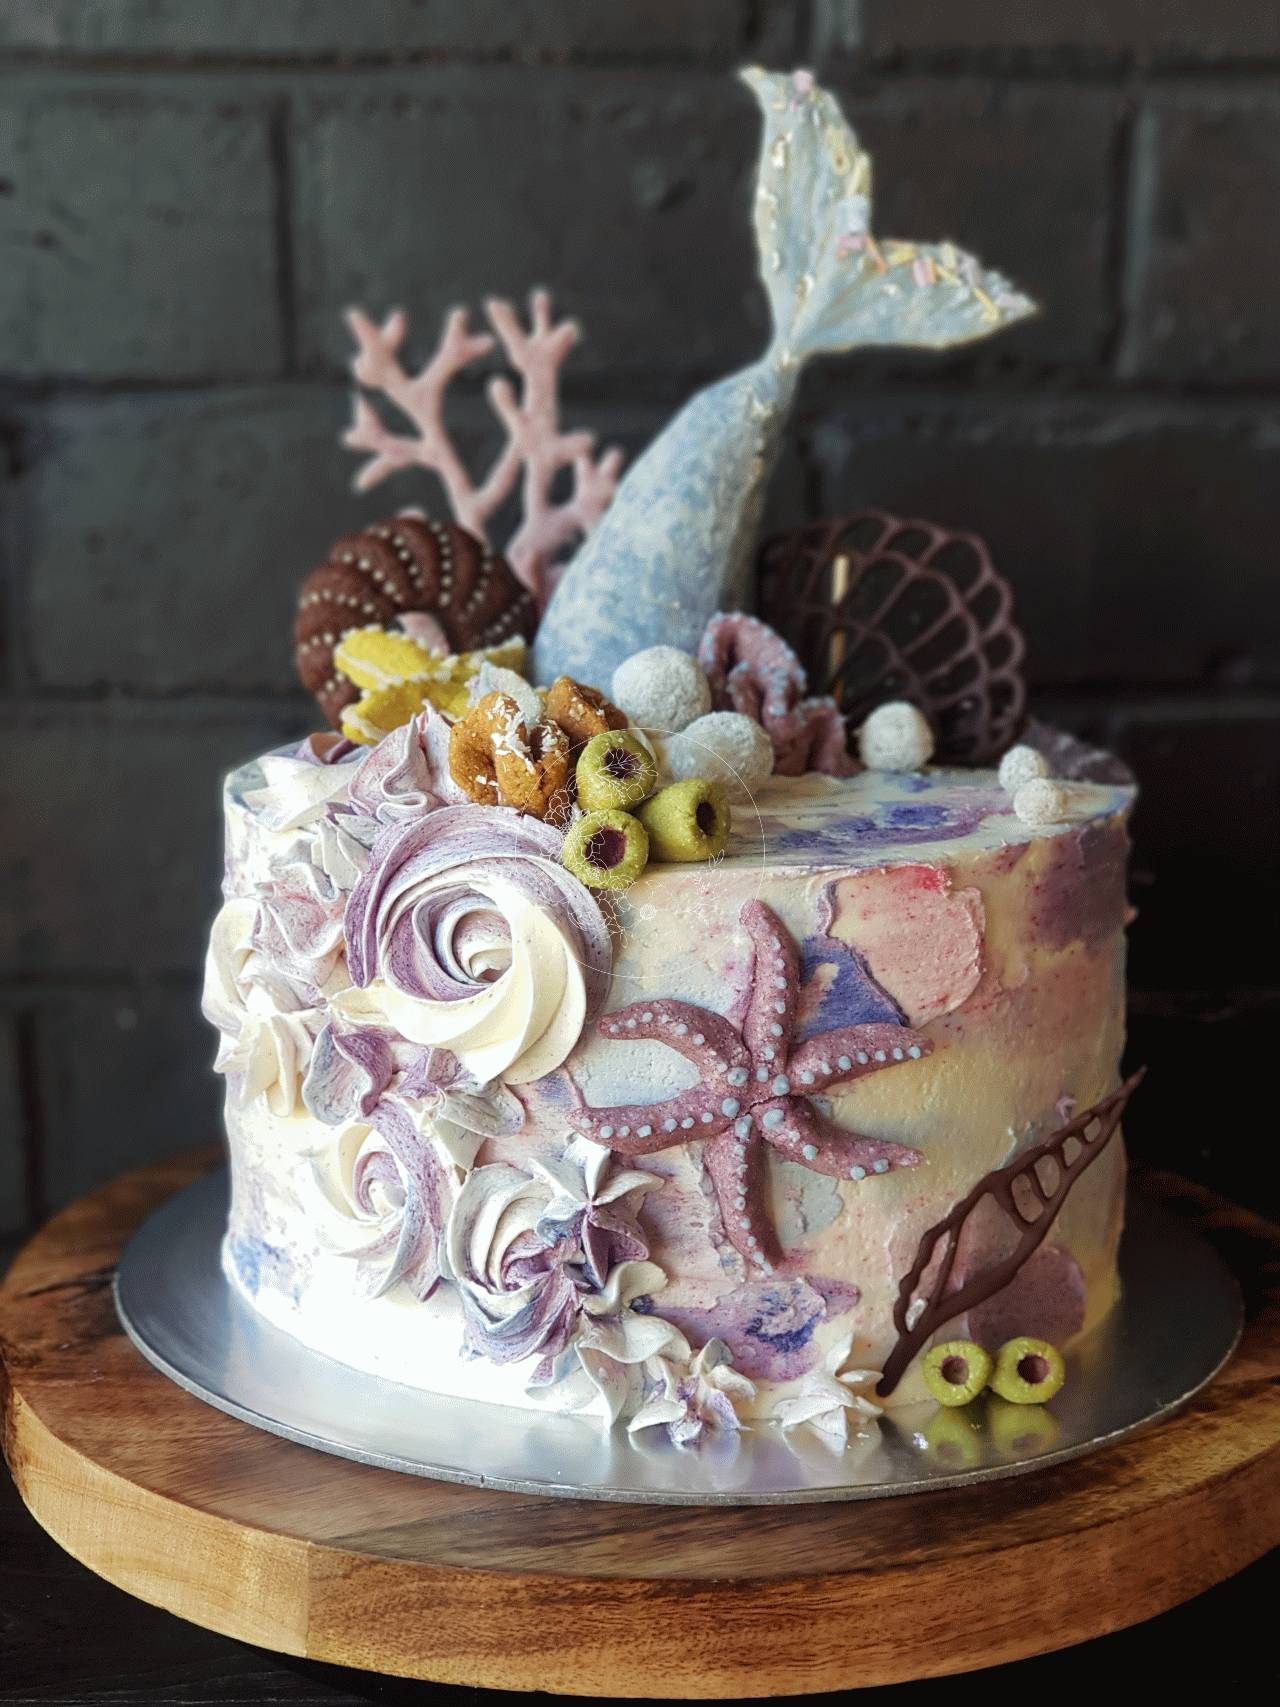 Mermaid Theme cake, the mermaid tail and coral was made using coconut bliss ball receipe, textured icing and swirls of icing, coconut sugar cookie sea animals and chocolate shells